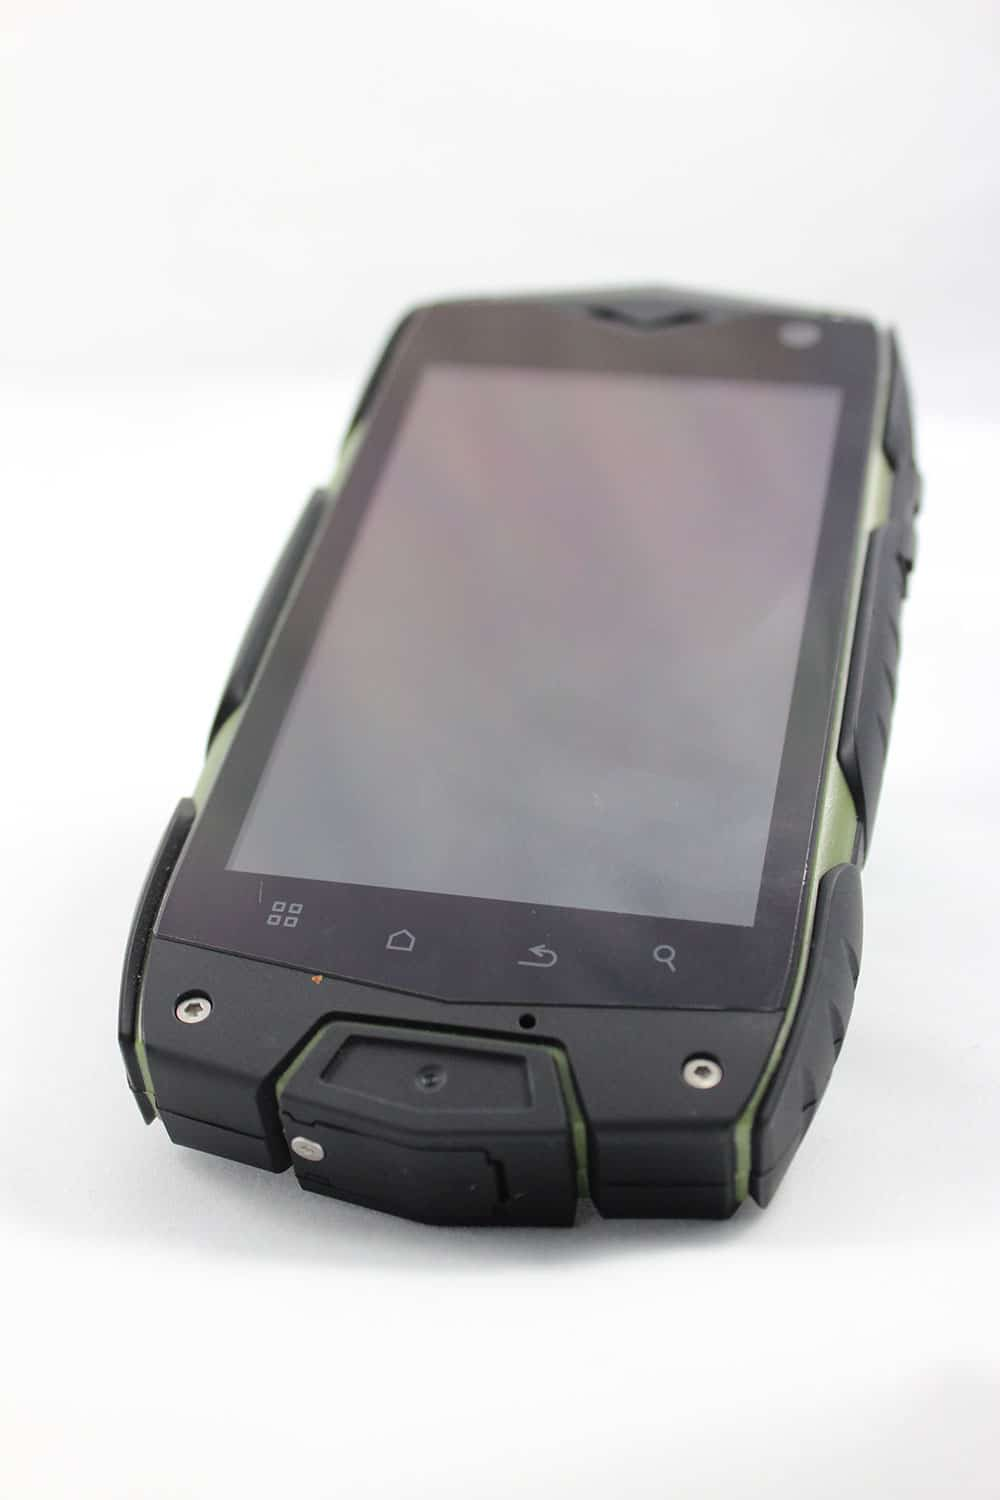 Photo of Testbericht: Icefox Thunder (Outdoor Smartphone)